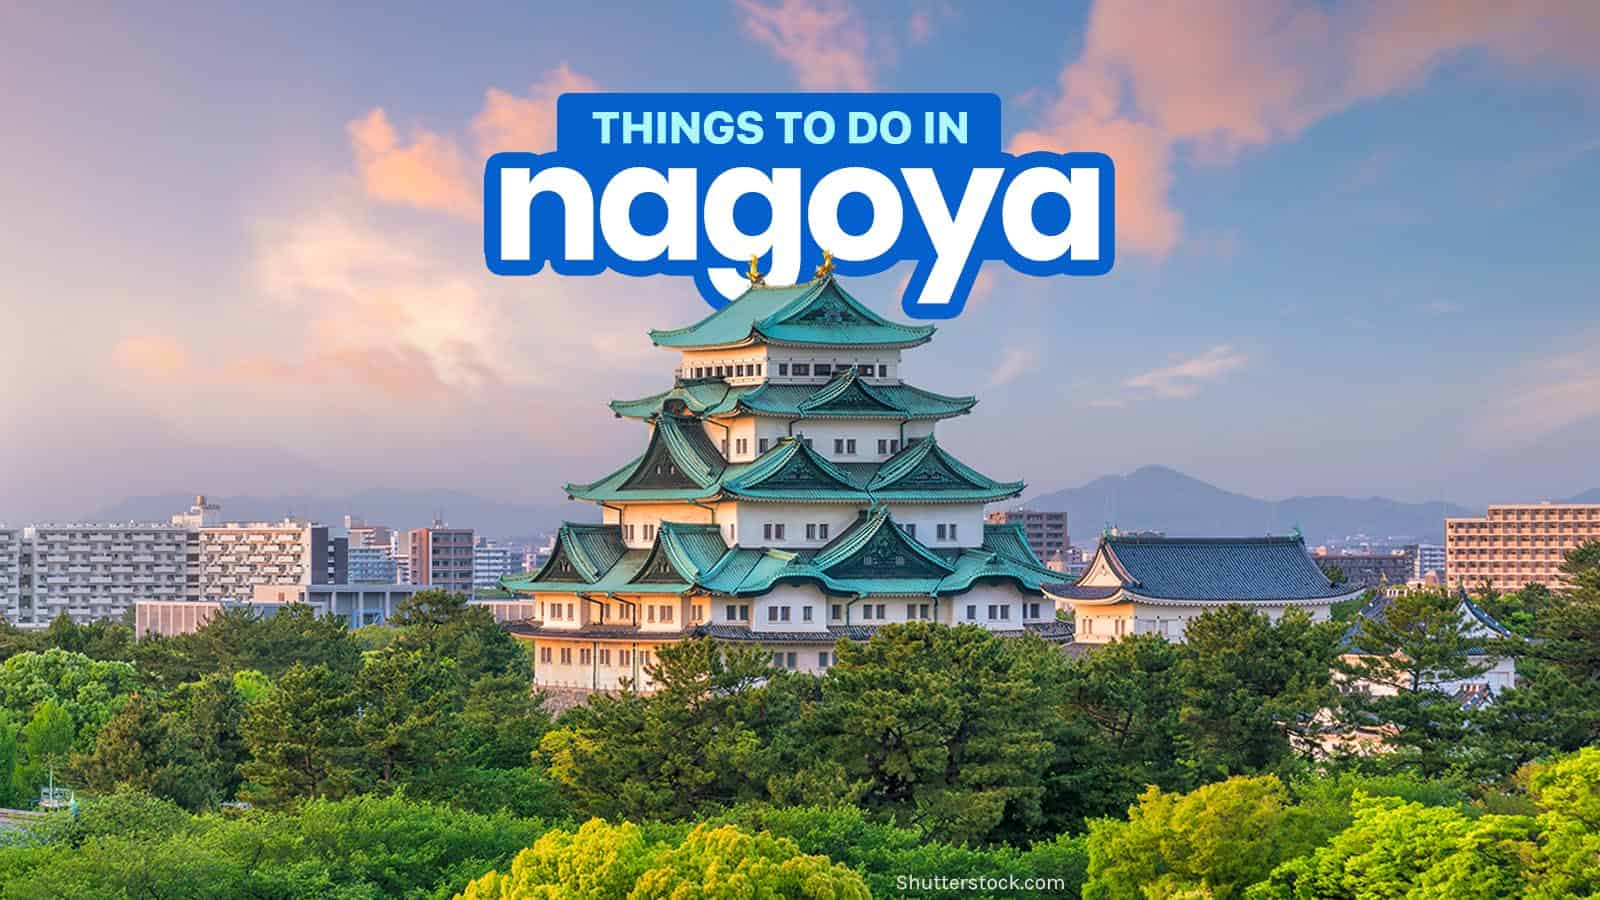 NAGOYA ITINERARY: Best Things to Do & Places to Visit